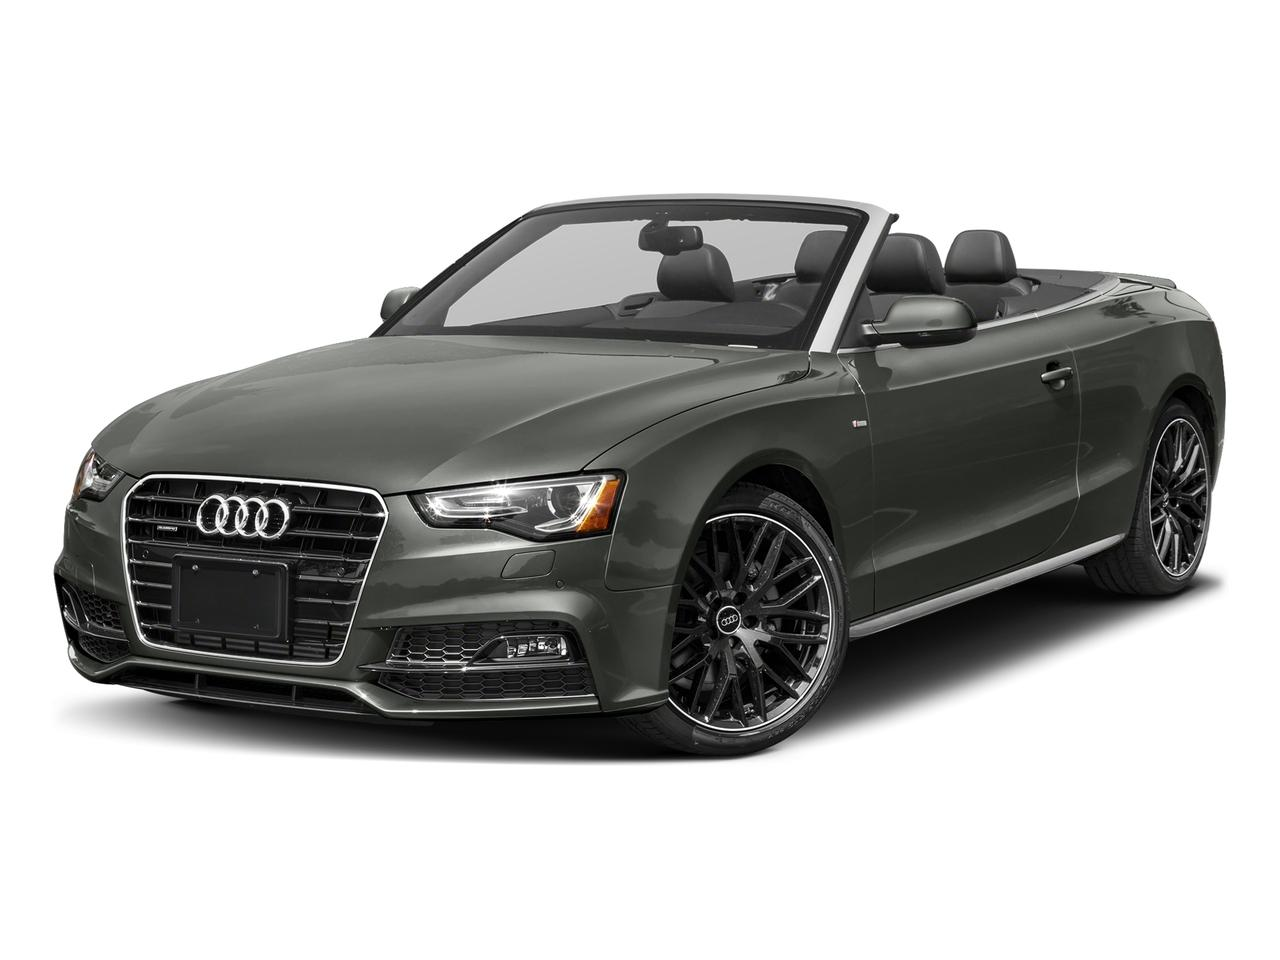 2017 Audi A5 Cabriolet Vehicle Photo in Allentown, PA 18103